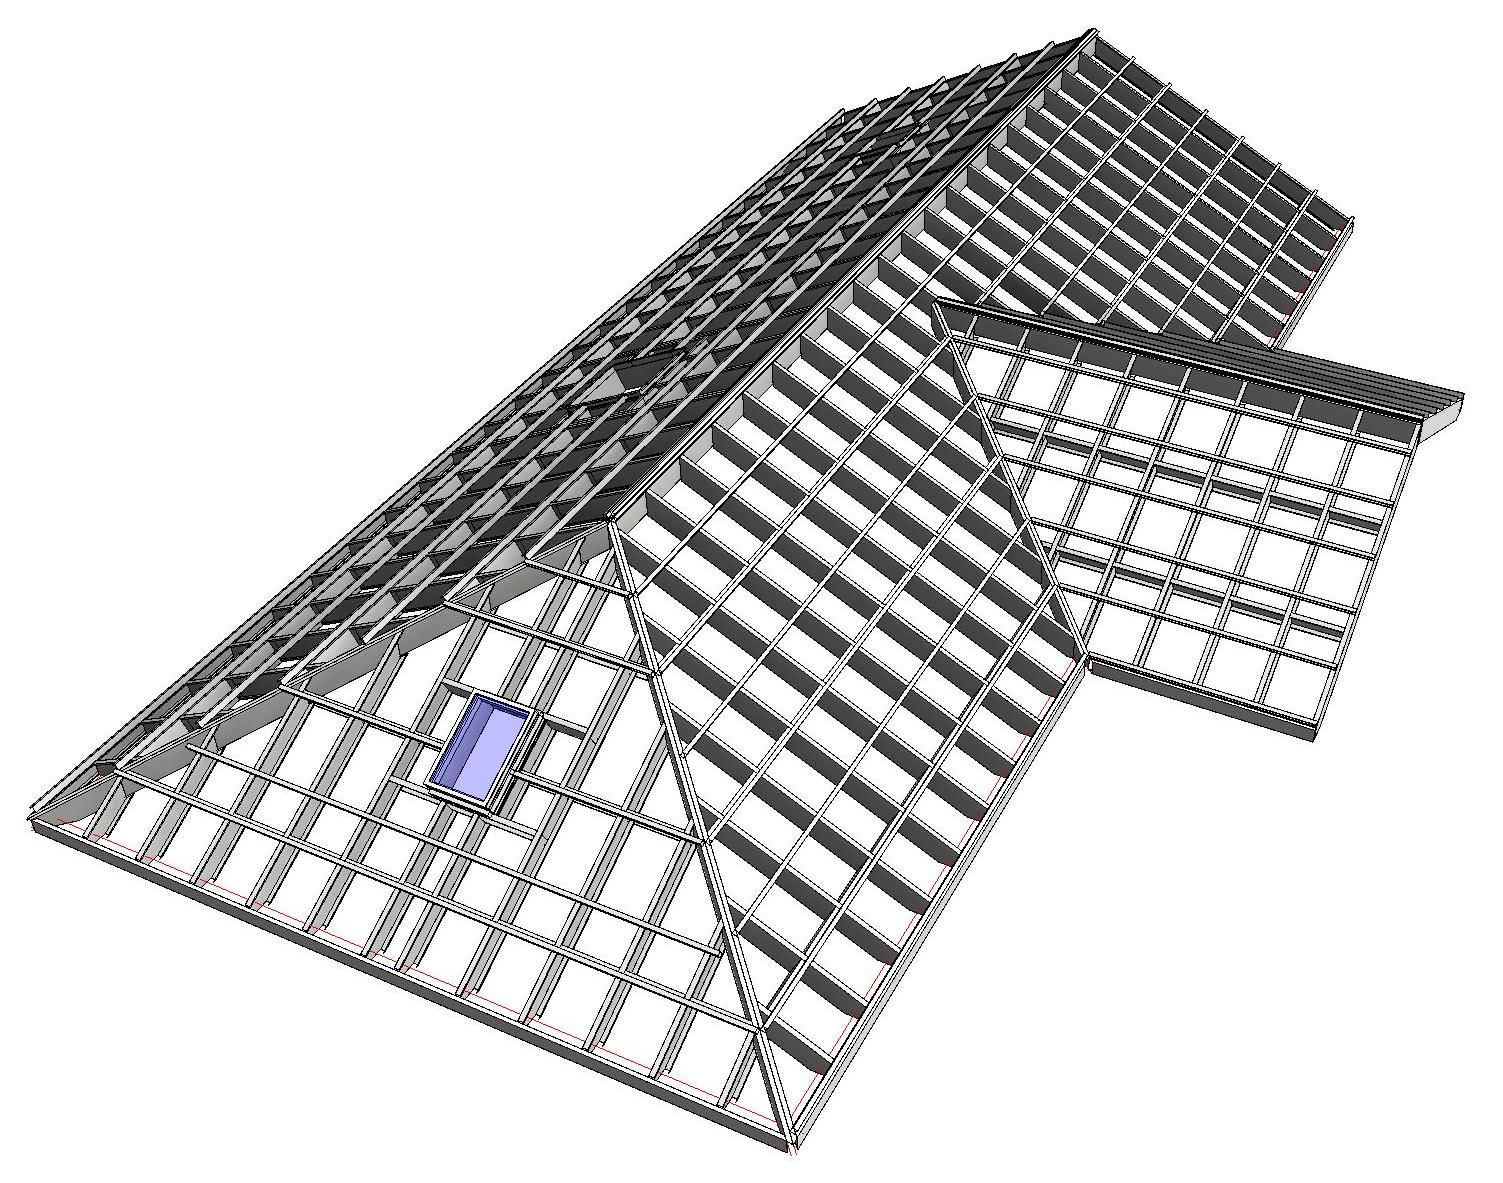 Roof Trusses Revit & Carry Out Structural Analyses Without